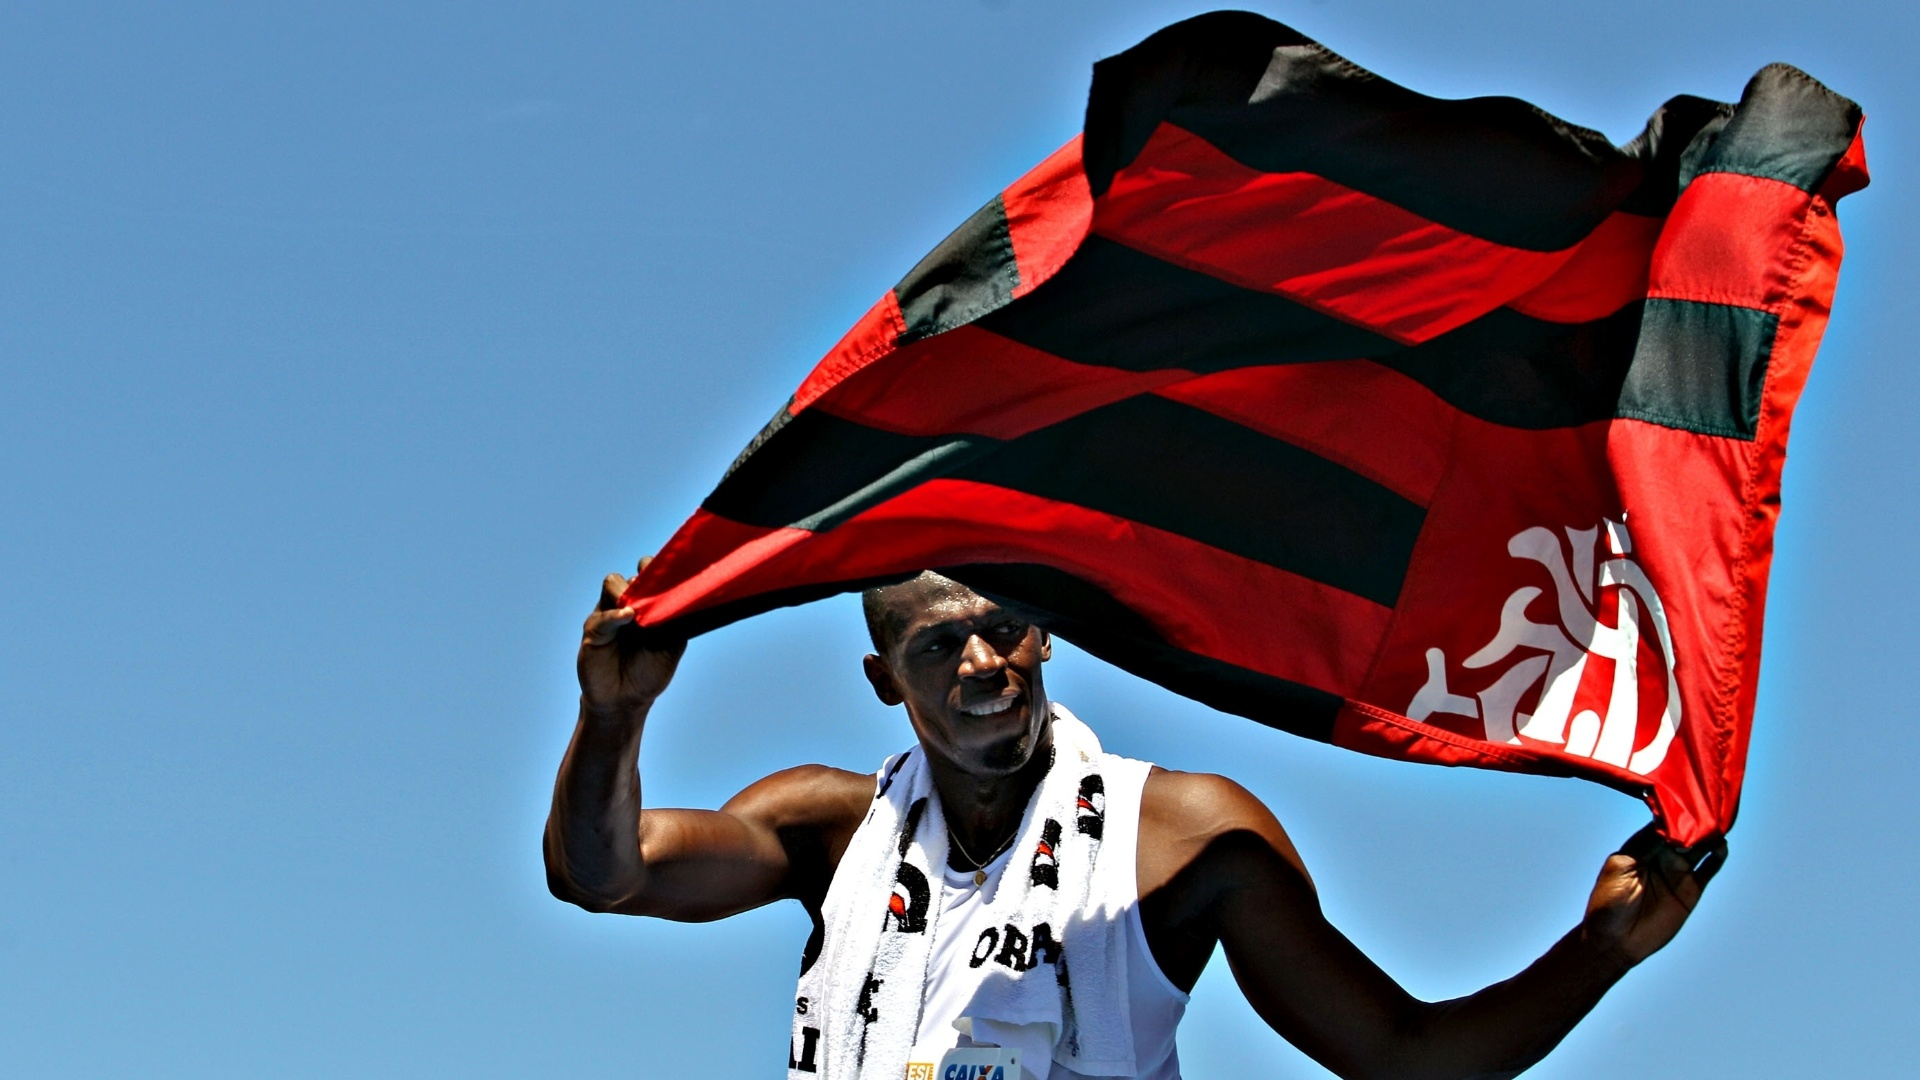 31.mar.2013 - Usain Bolt segura bandeira do Flamengo aps vencer desafio na praia de Copacabana